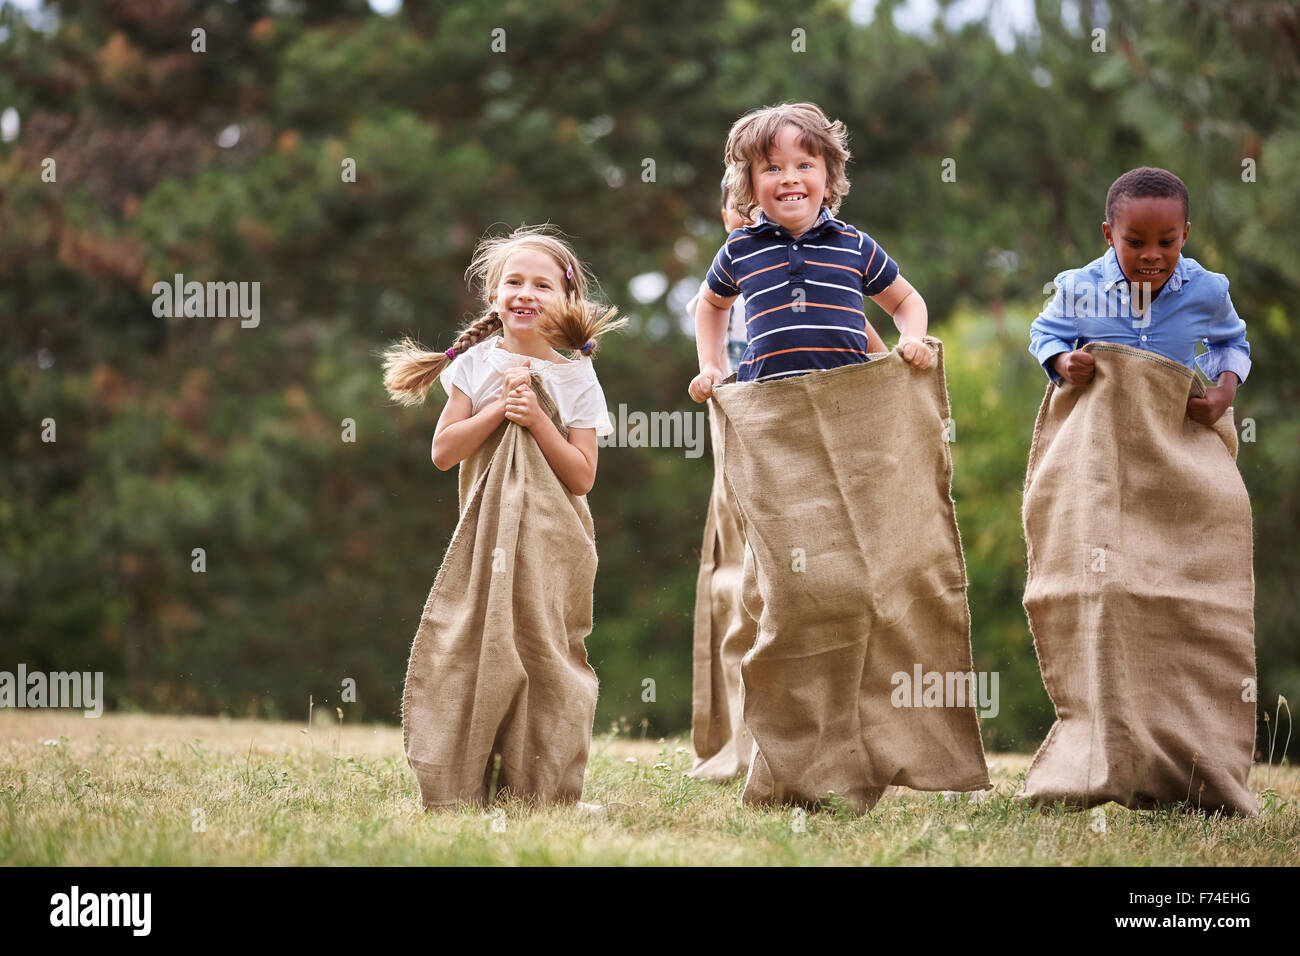 Children competing at sack race and having fun - Stock Image